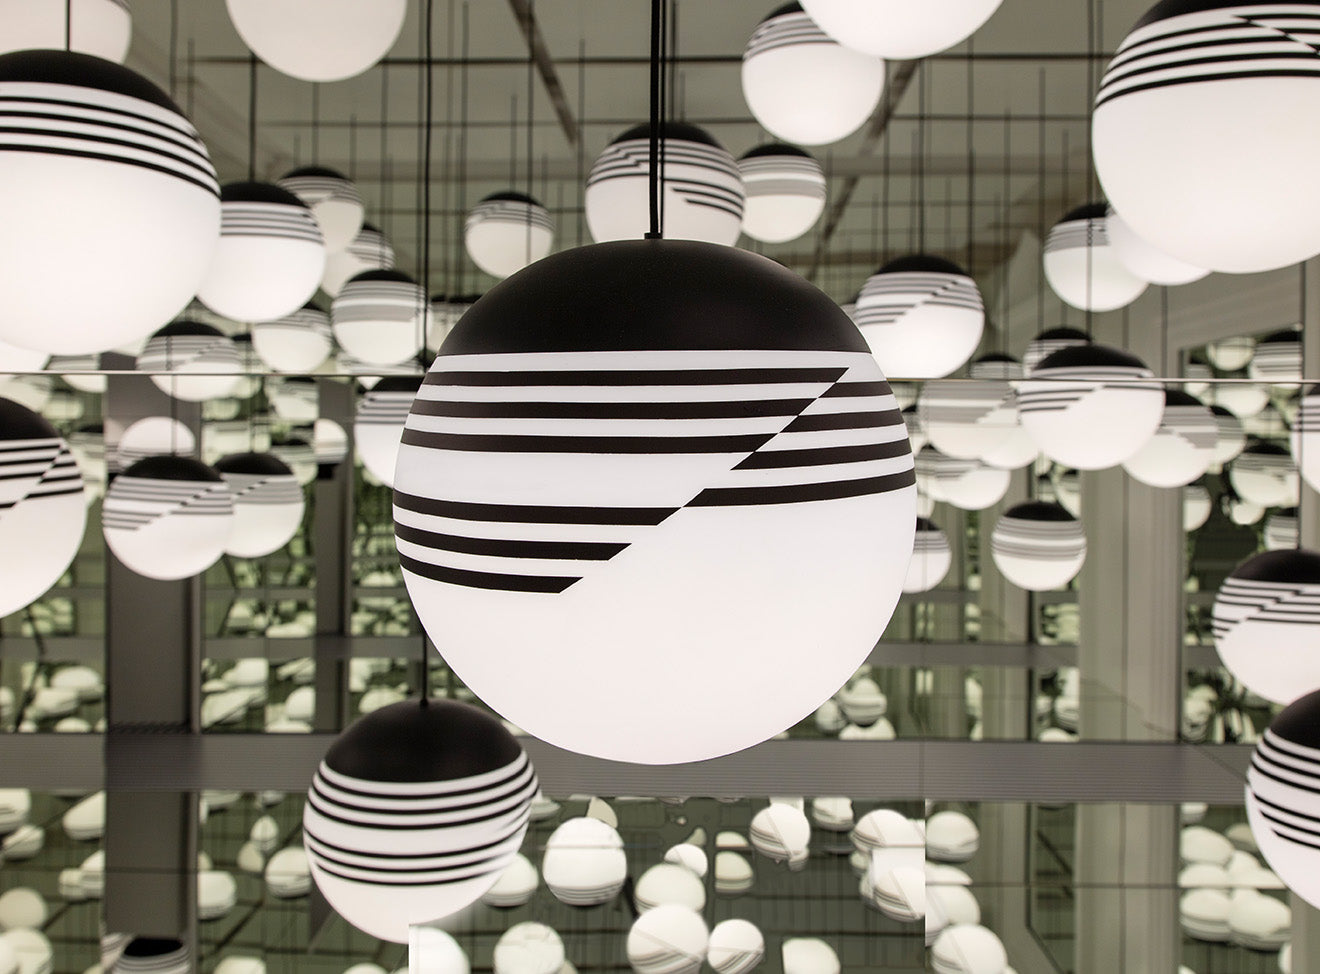 Opticality Lighting from Lee Broom on display at his London Showroom